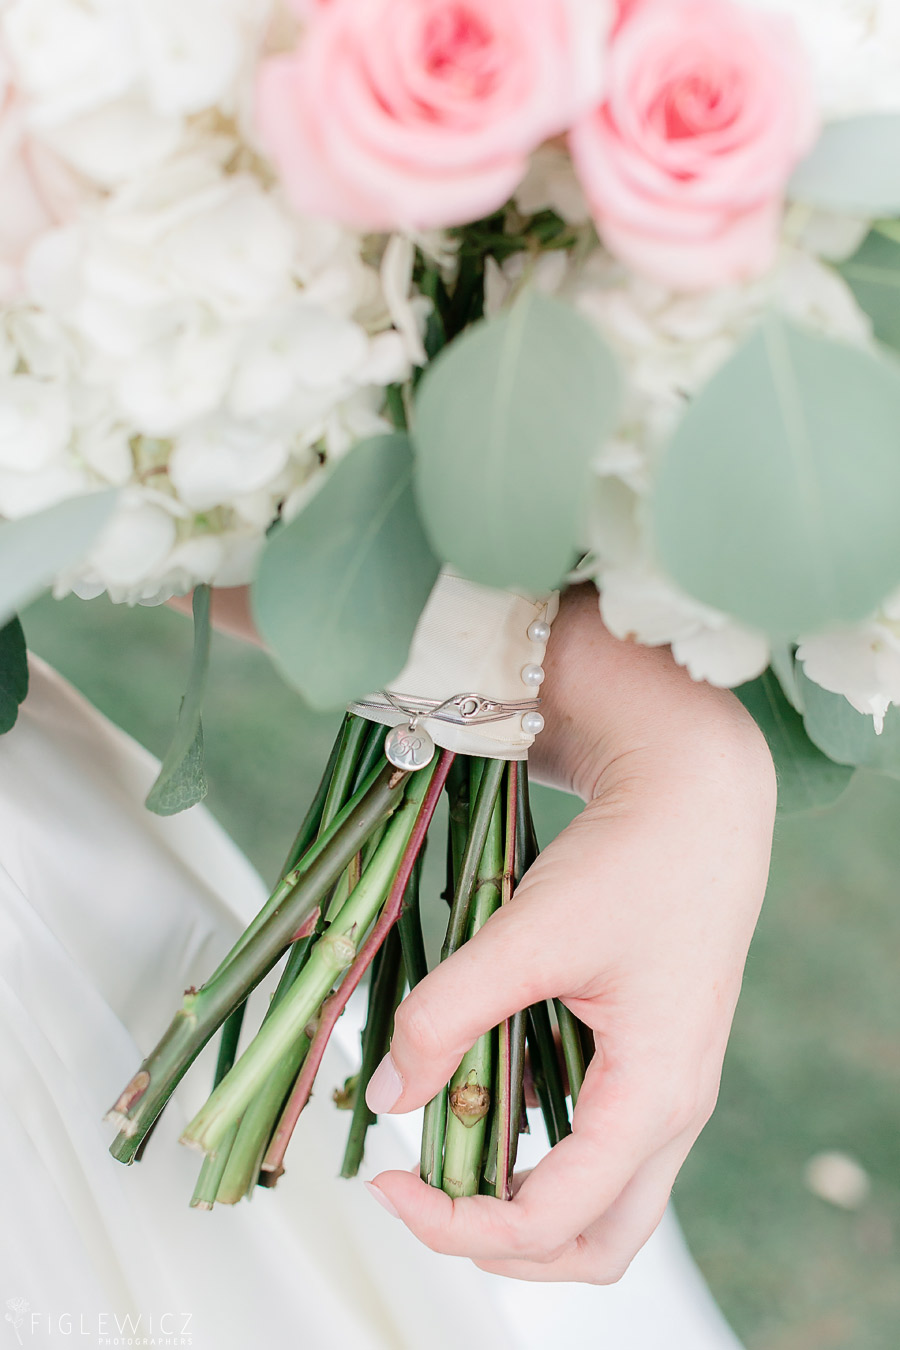 brides bouquet at South Coast Botanic Gardens wedding